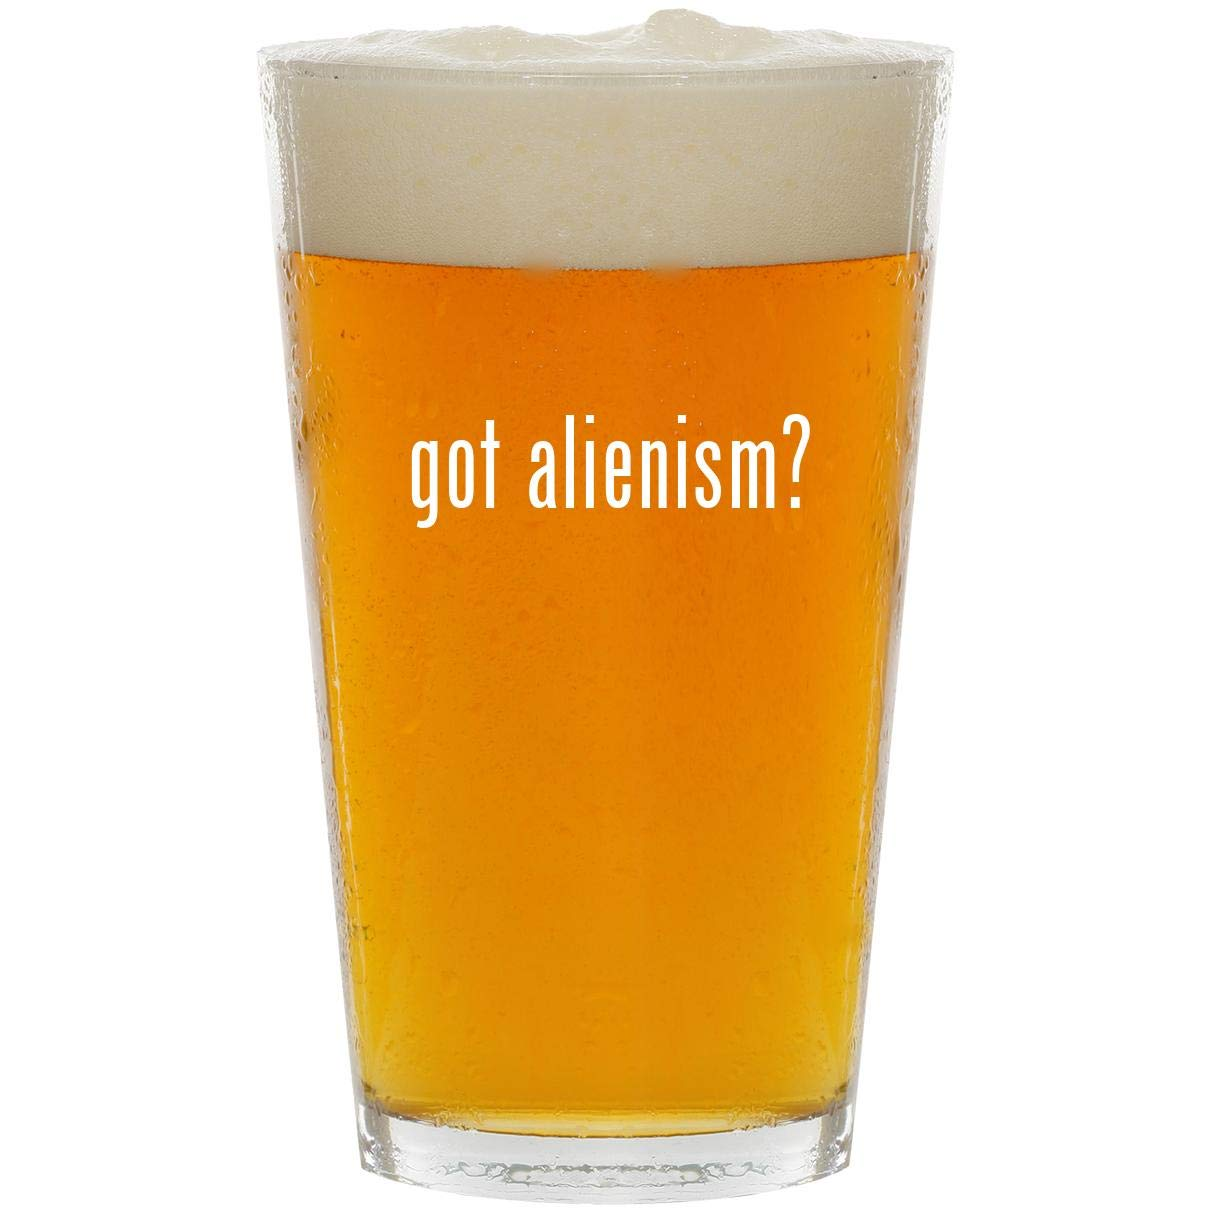 got alienism? - Glass 16oz Beer Pint